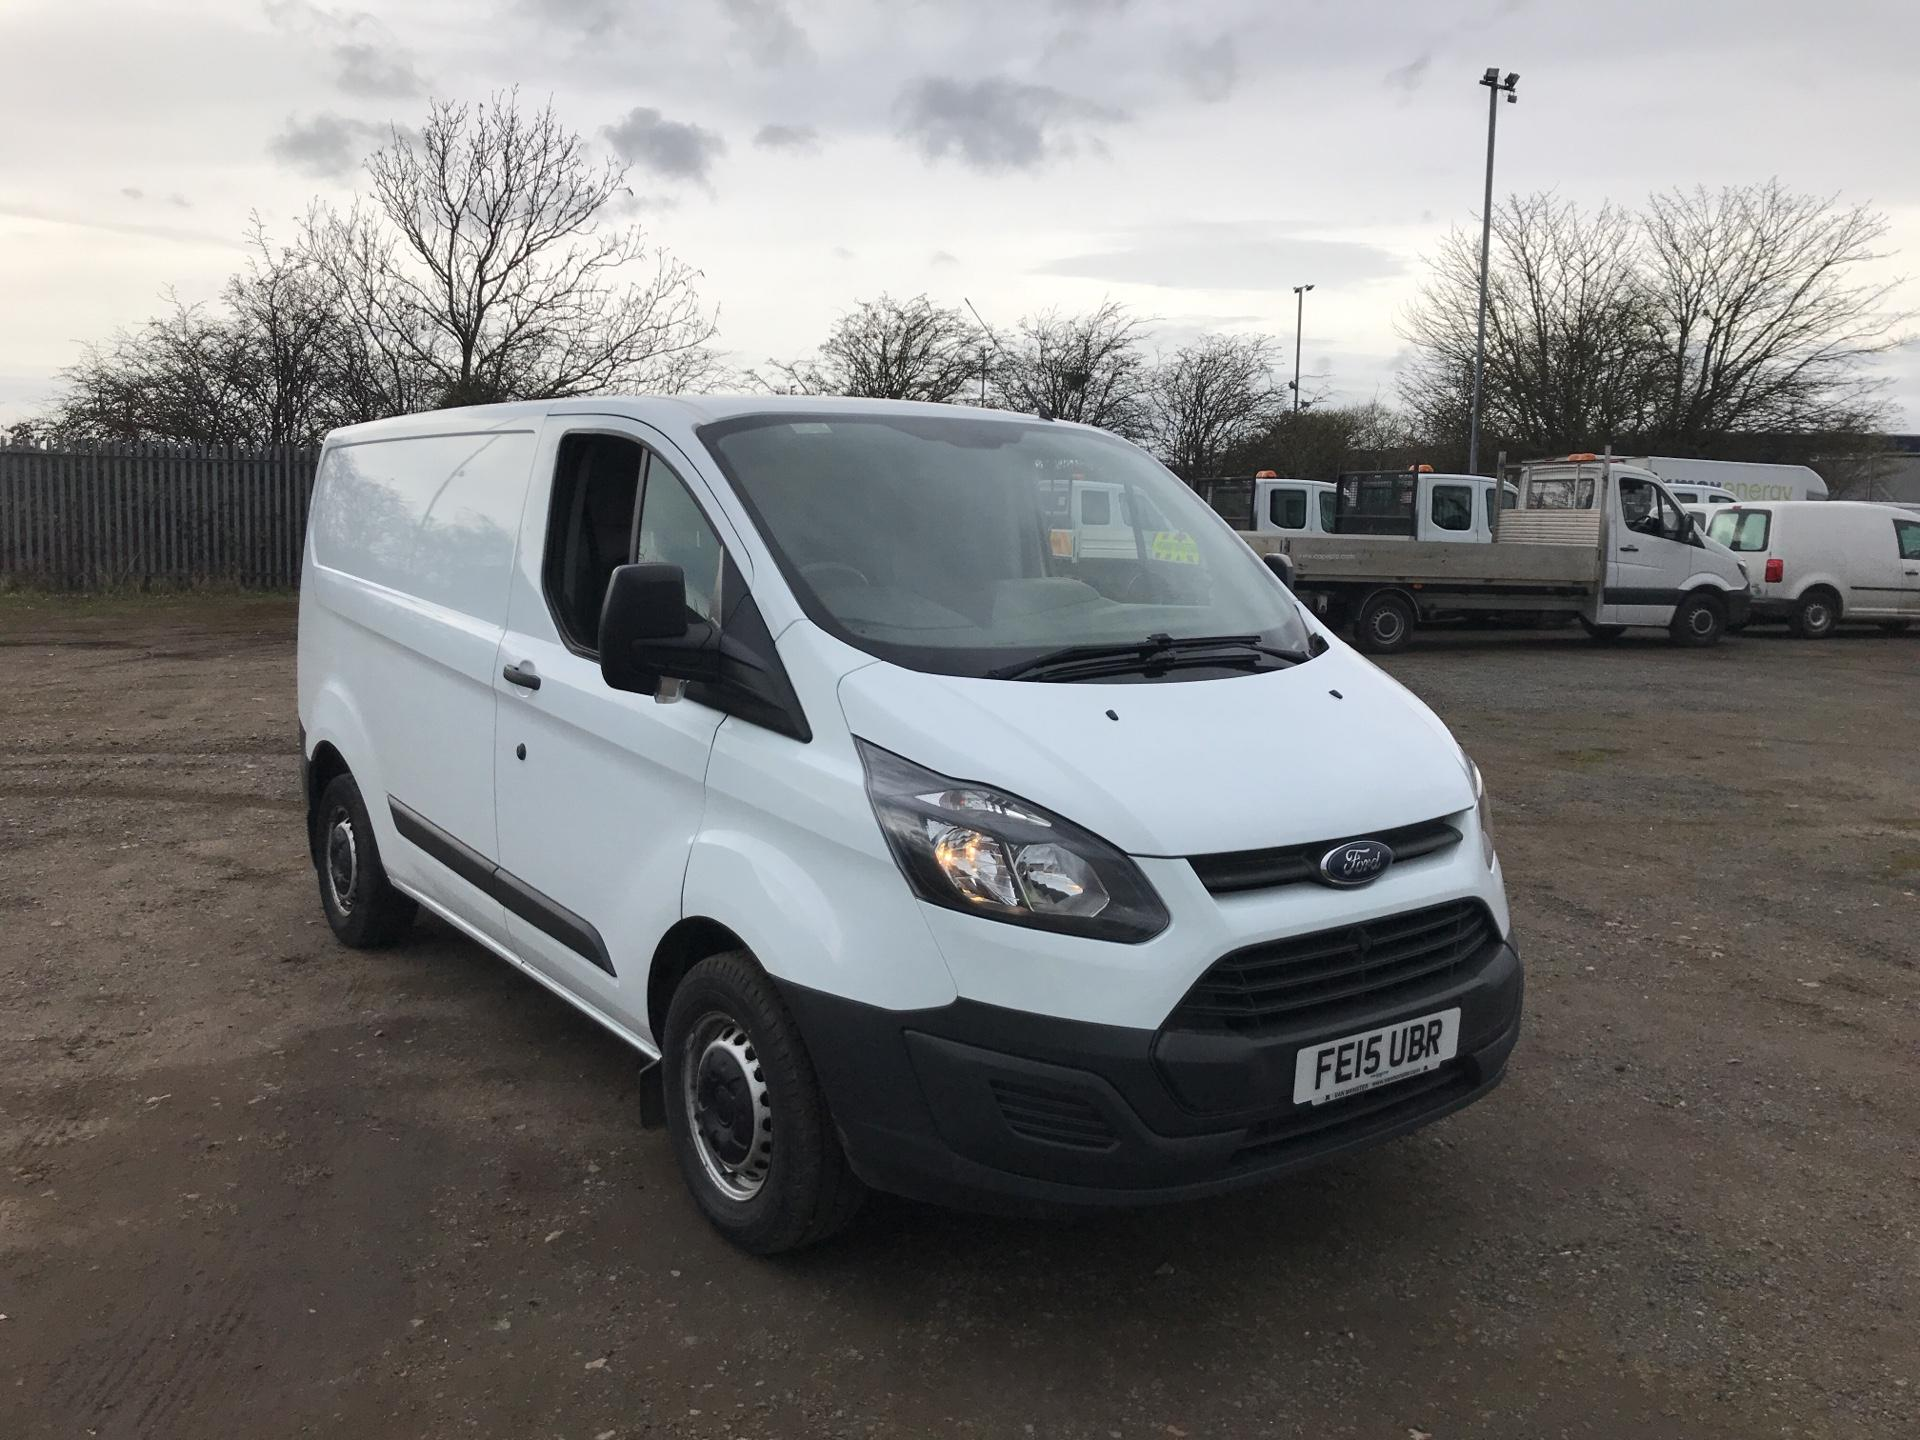 2015 Ford Transit Custom 290 L1 DIESEL FWD 2.2  TDCI 100PS LOW ROOF VAN EURO 5 (FE15UBR)